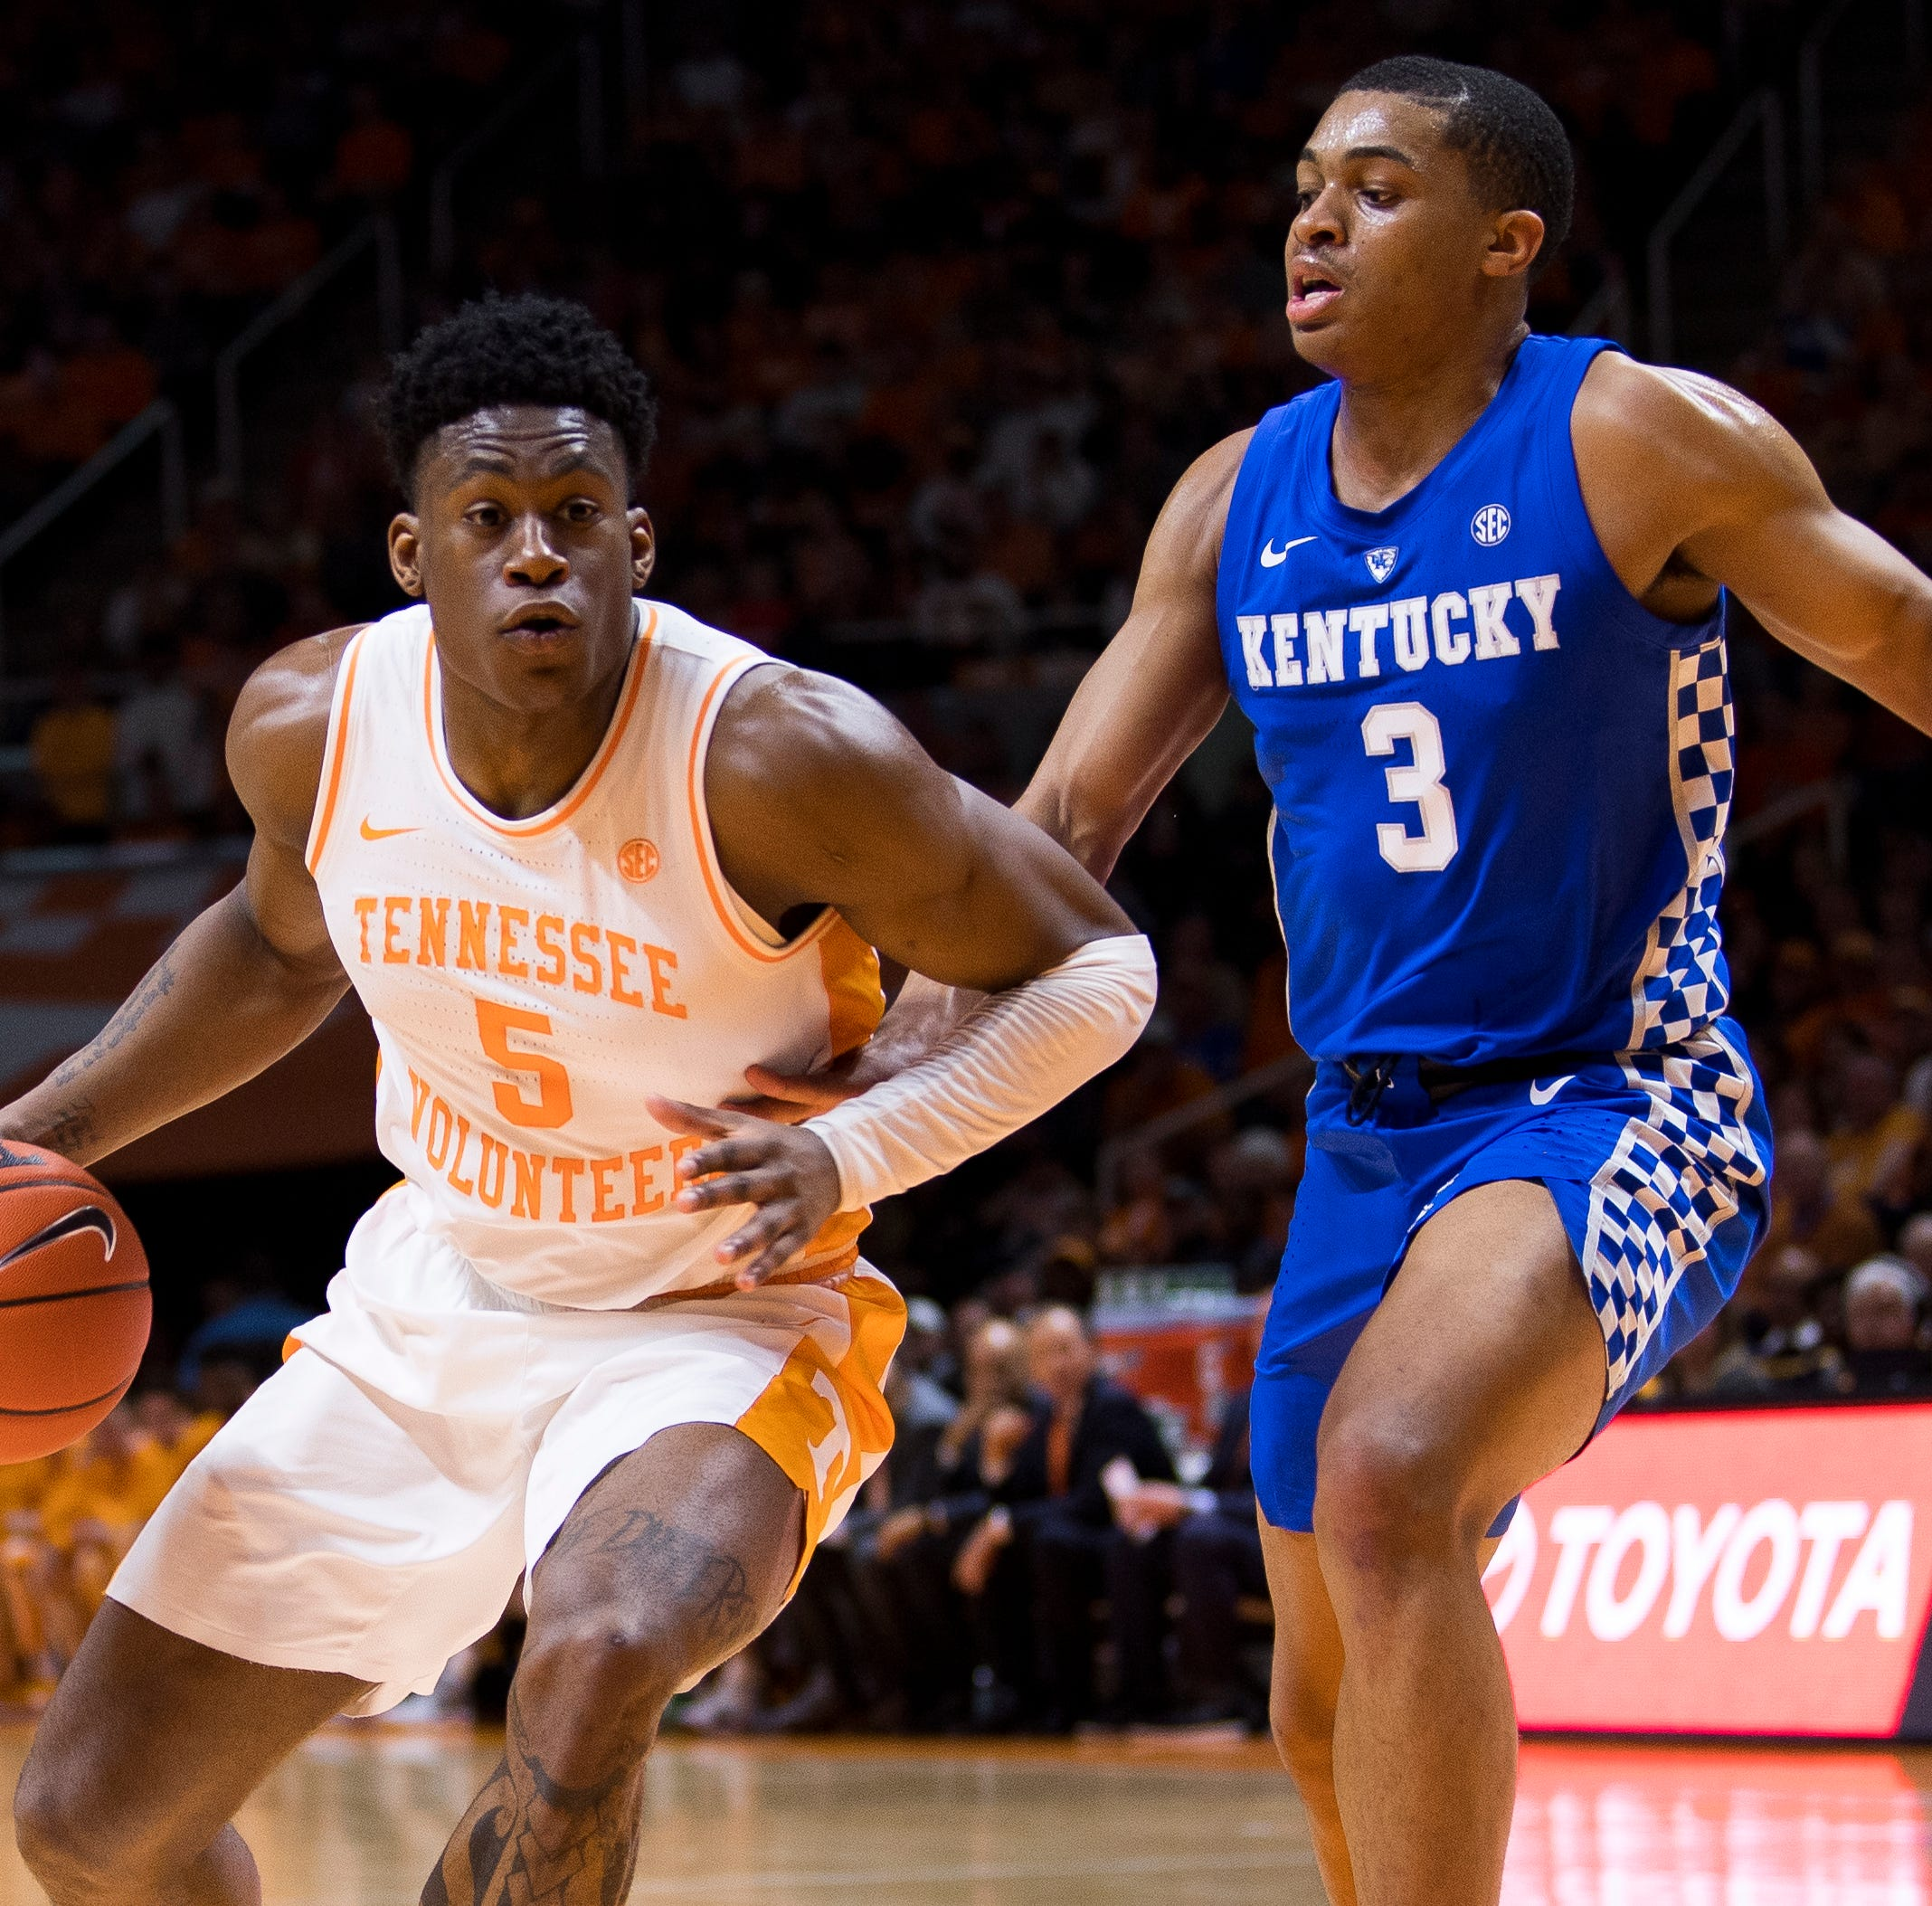 Can Tennessee basketball shake off 40-year curse, win SEC Tournament?